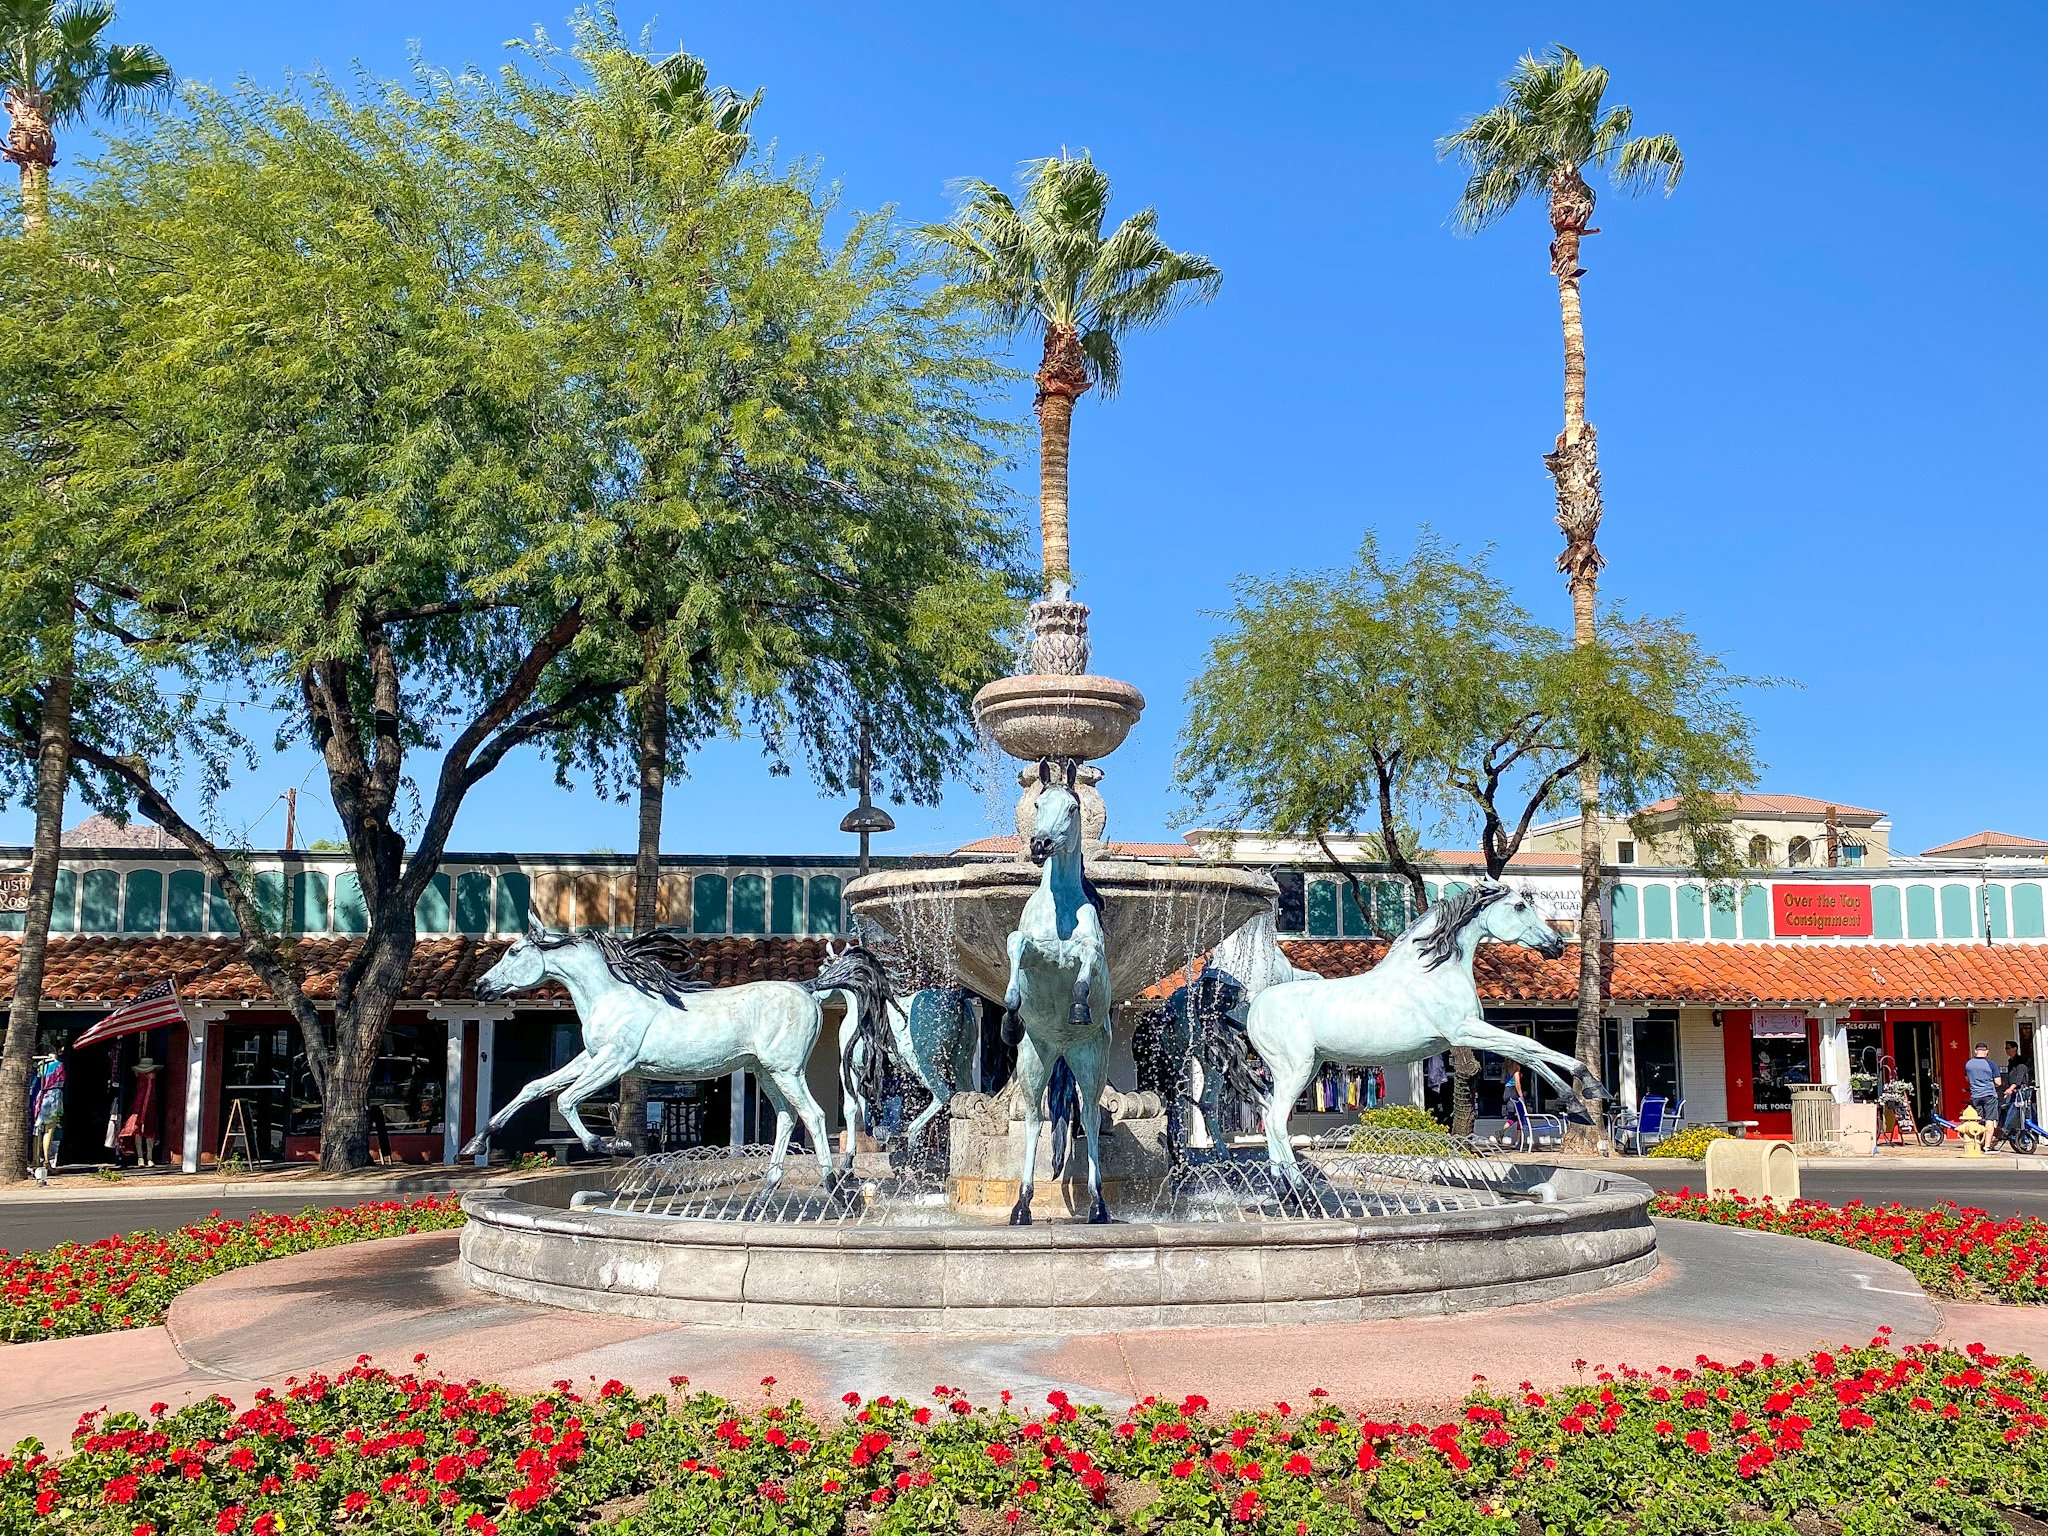 Old Town Scottsdale fountain